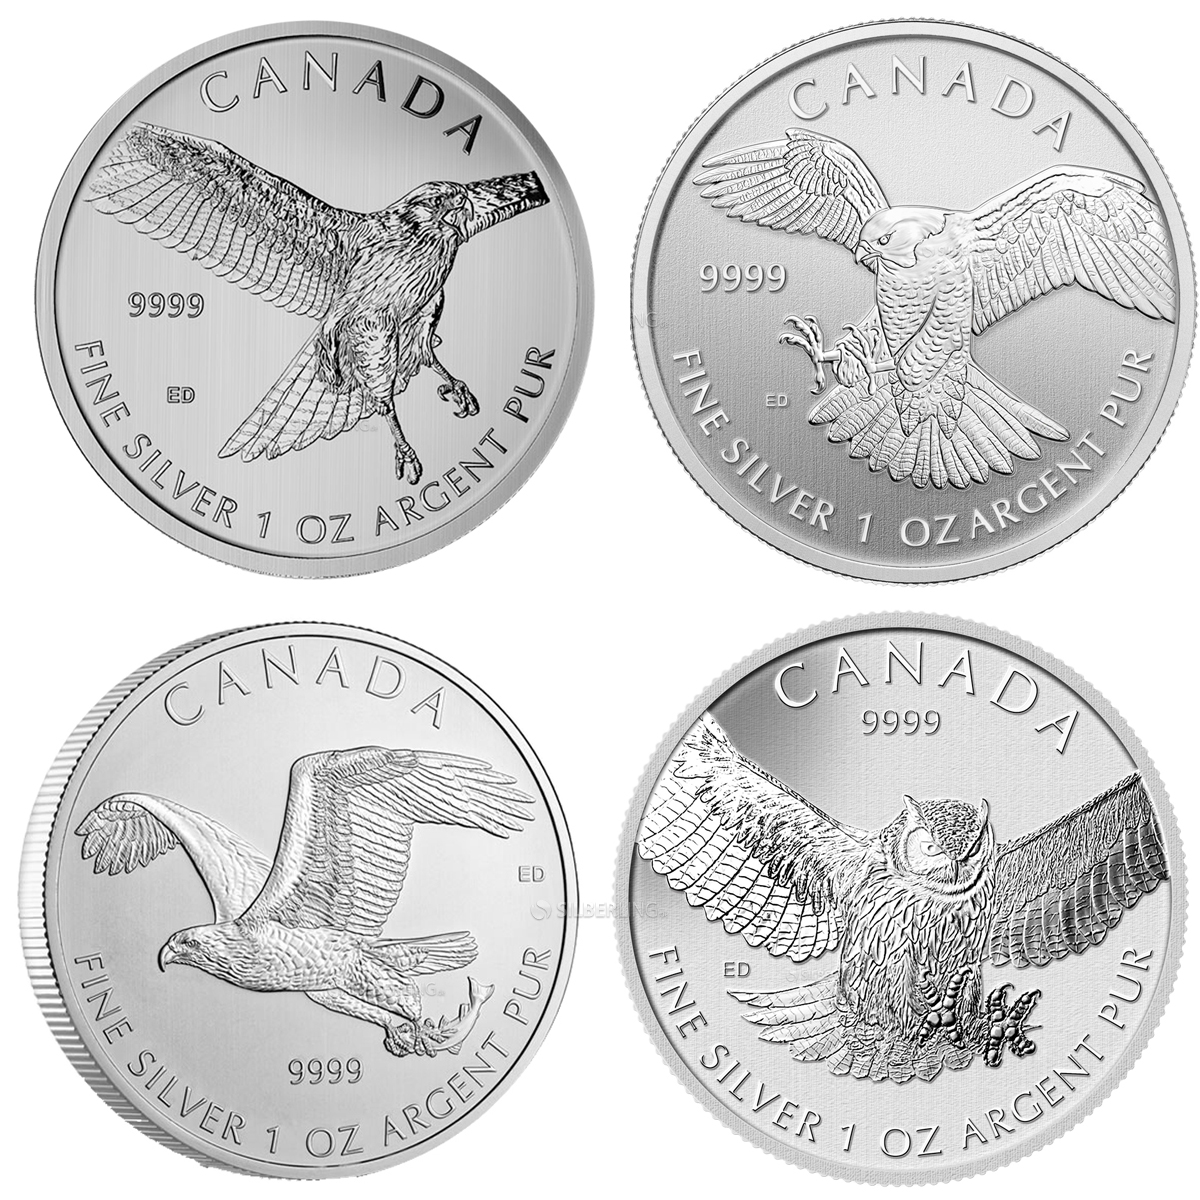 Full 4-Coin Series: 1 oz Silver Canadian Birds of Prey (2014-2015) ONLY 8 sets available